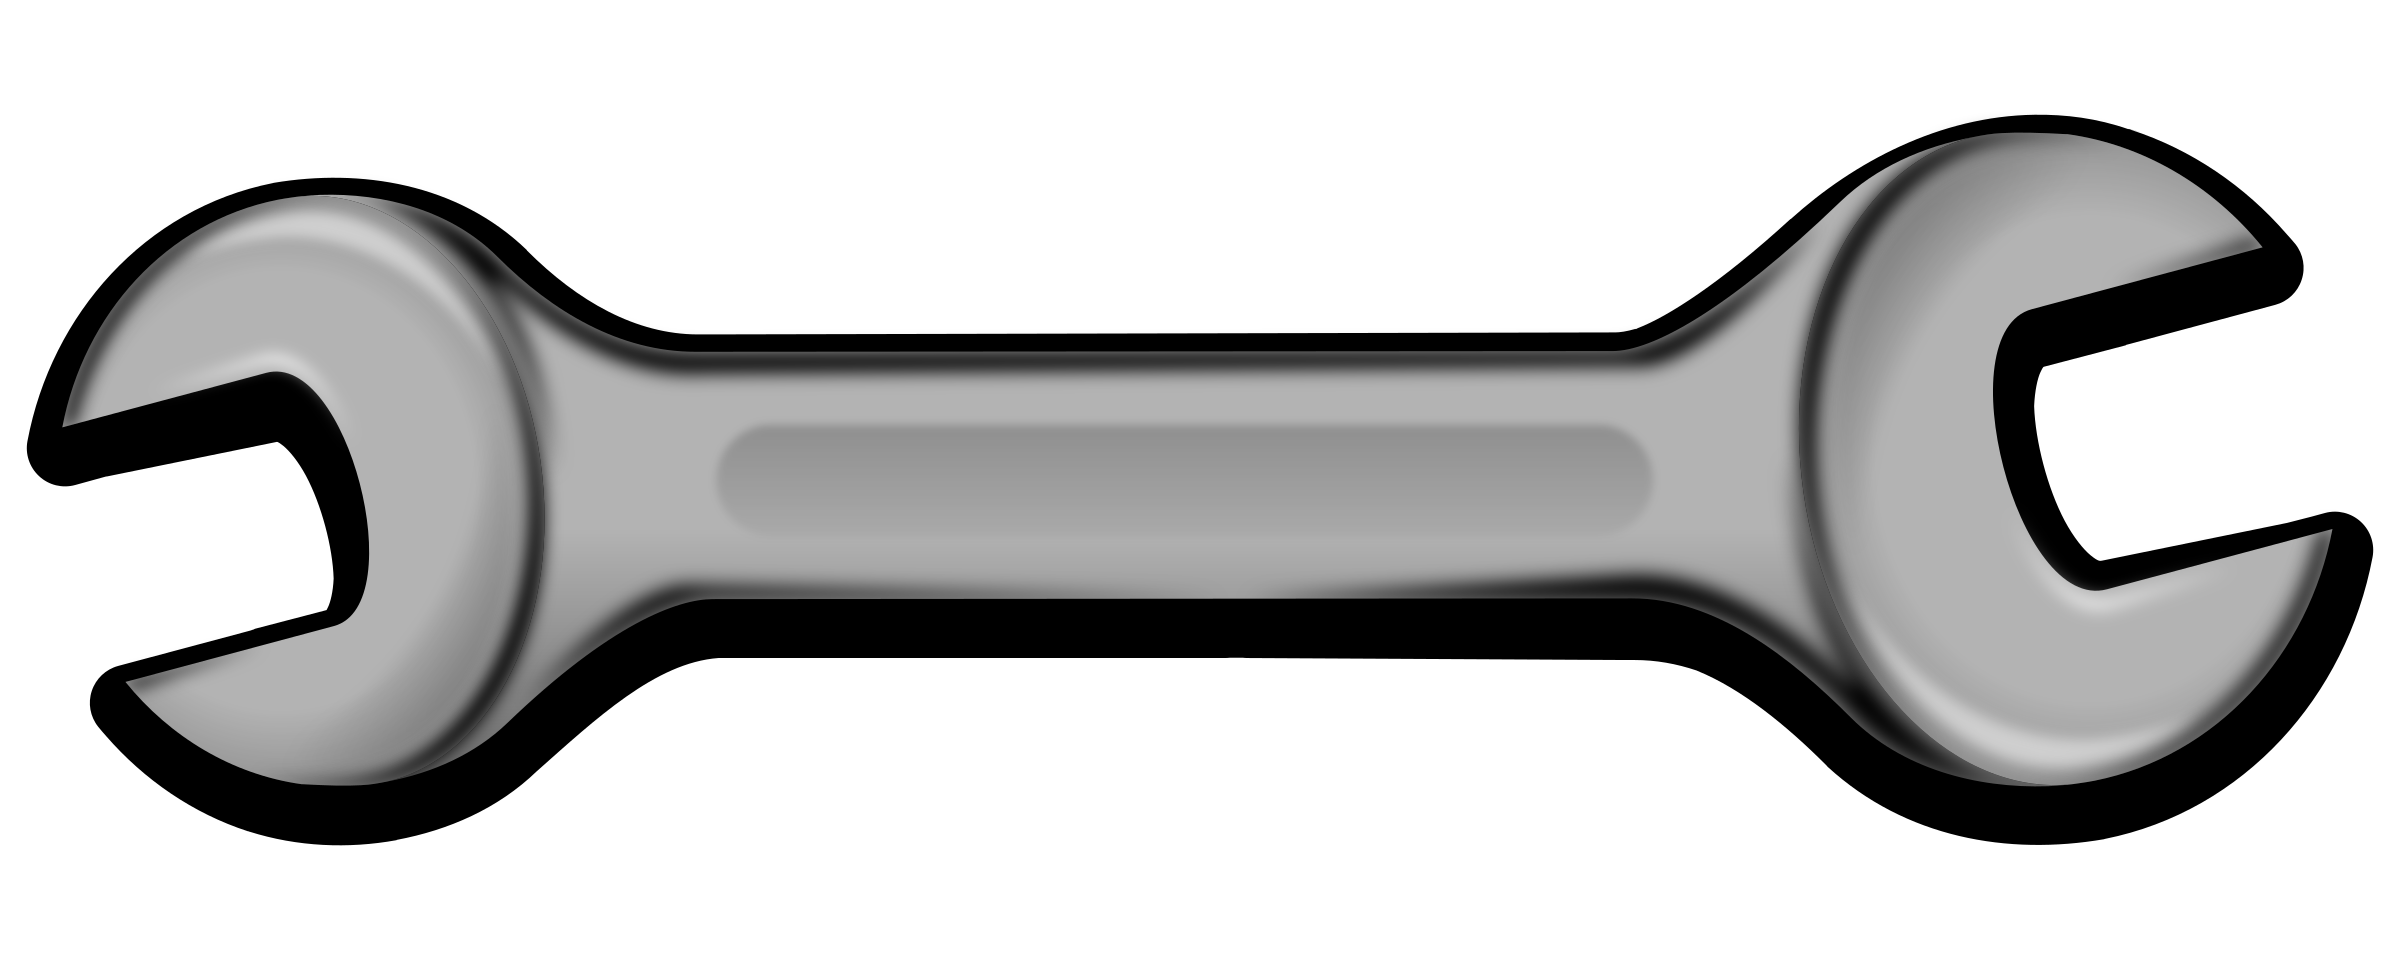 Wrench Transparent PNG Image